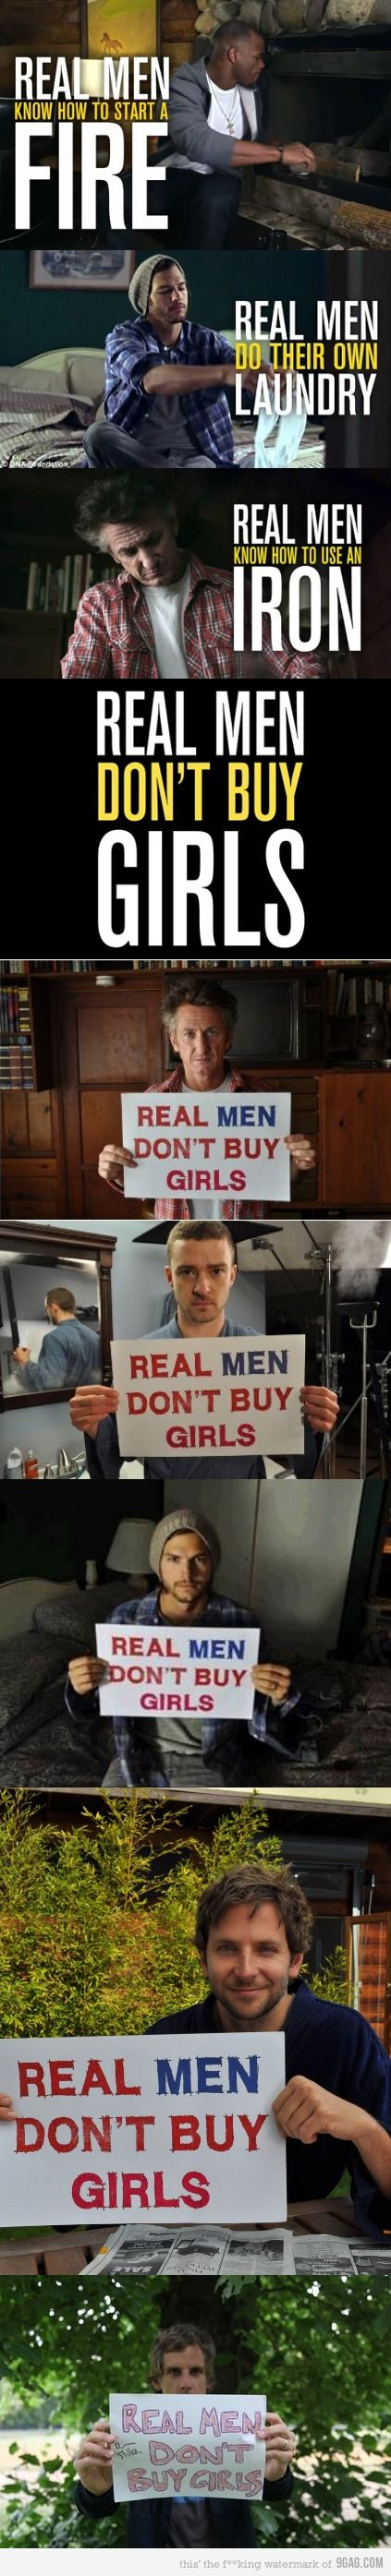 Real MenHuman Trafficking, Inspiration, Quotes, A Real Man, Buy Girls, Real Men, Things, Sex Trafficking, Realmen